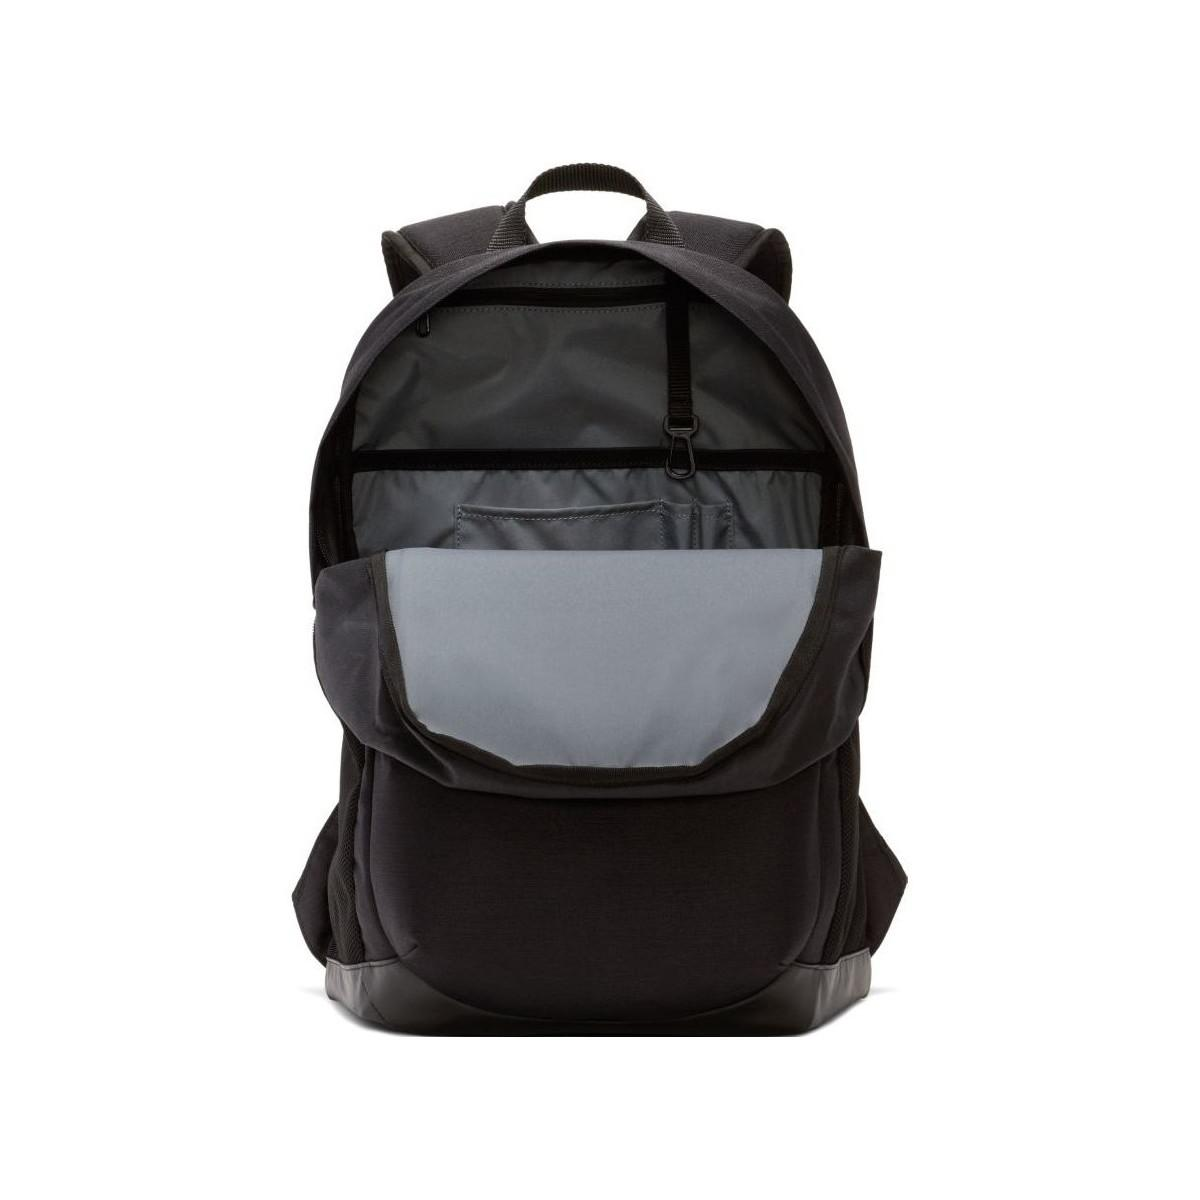 da43751395 ... Nike - Brasilia (medium) Training Backpack Womens Backpack In Black -  Lyst.